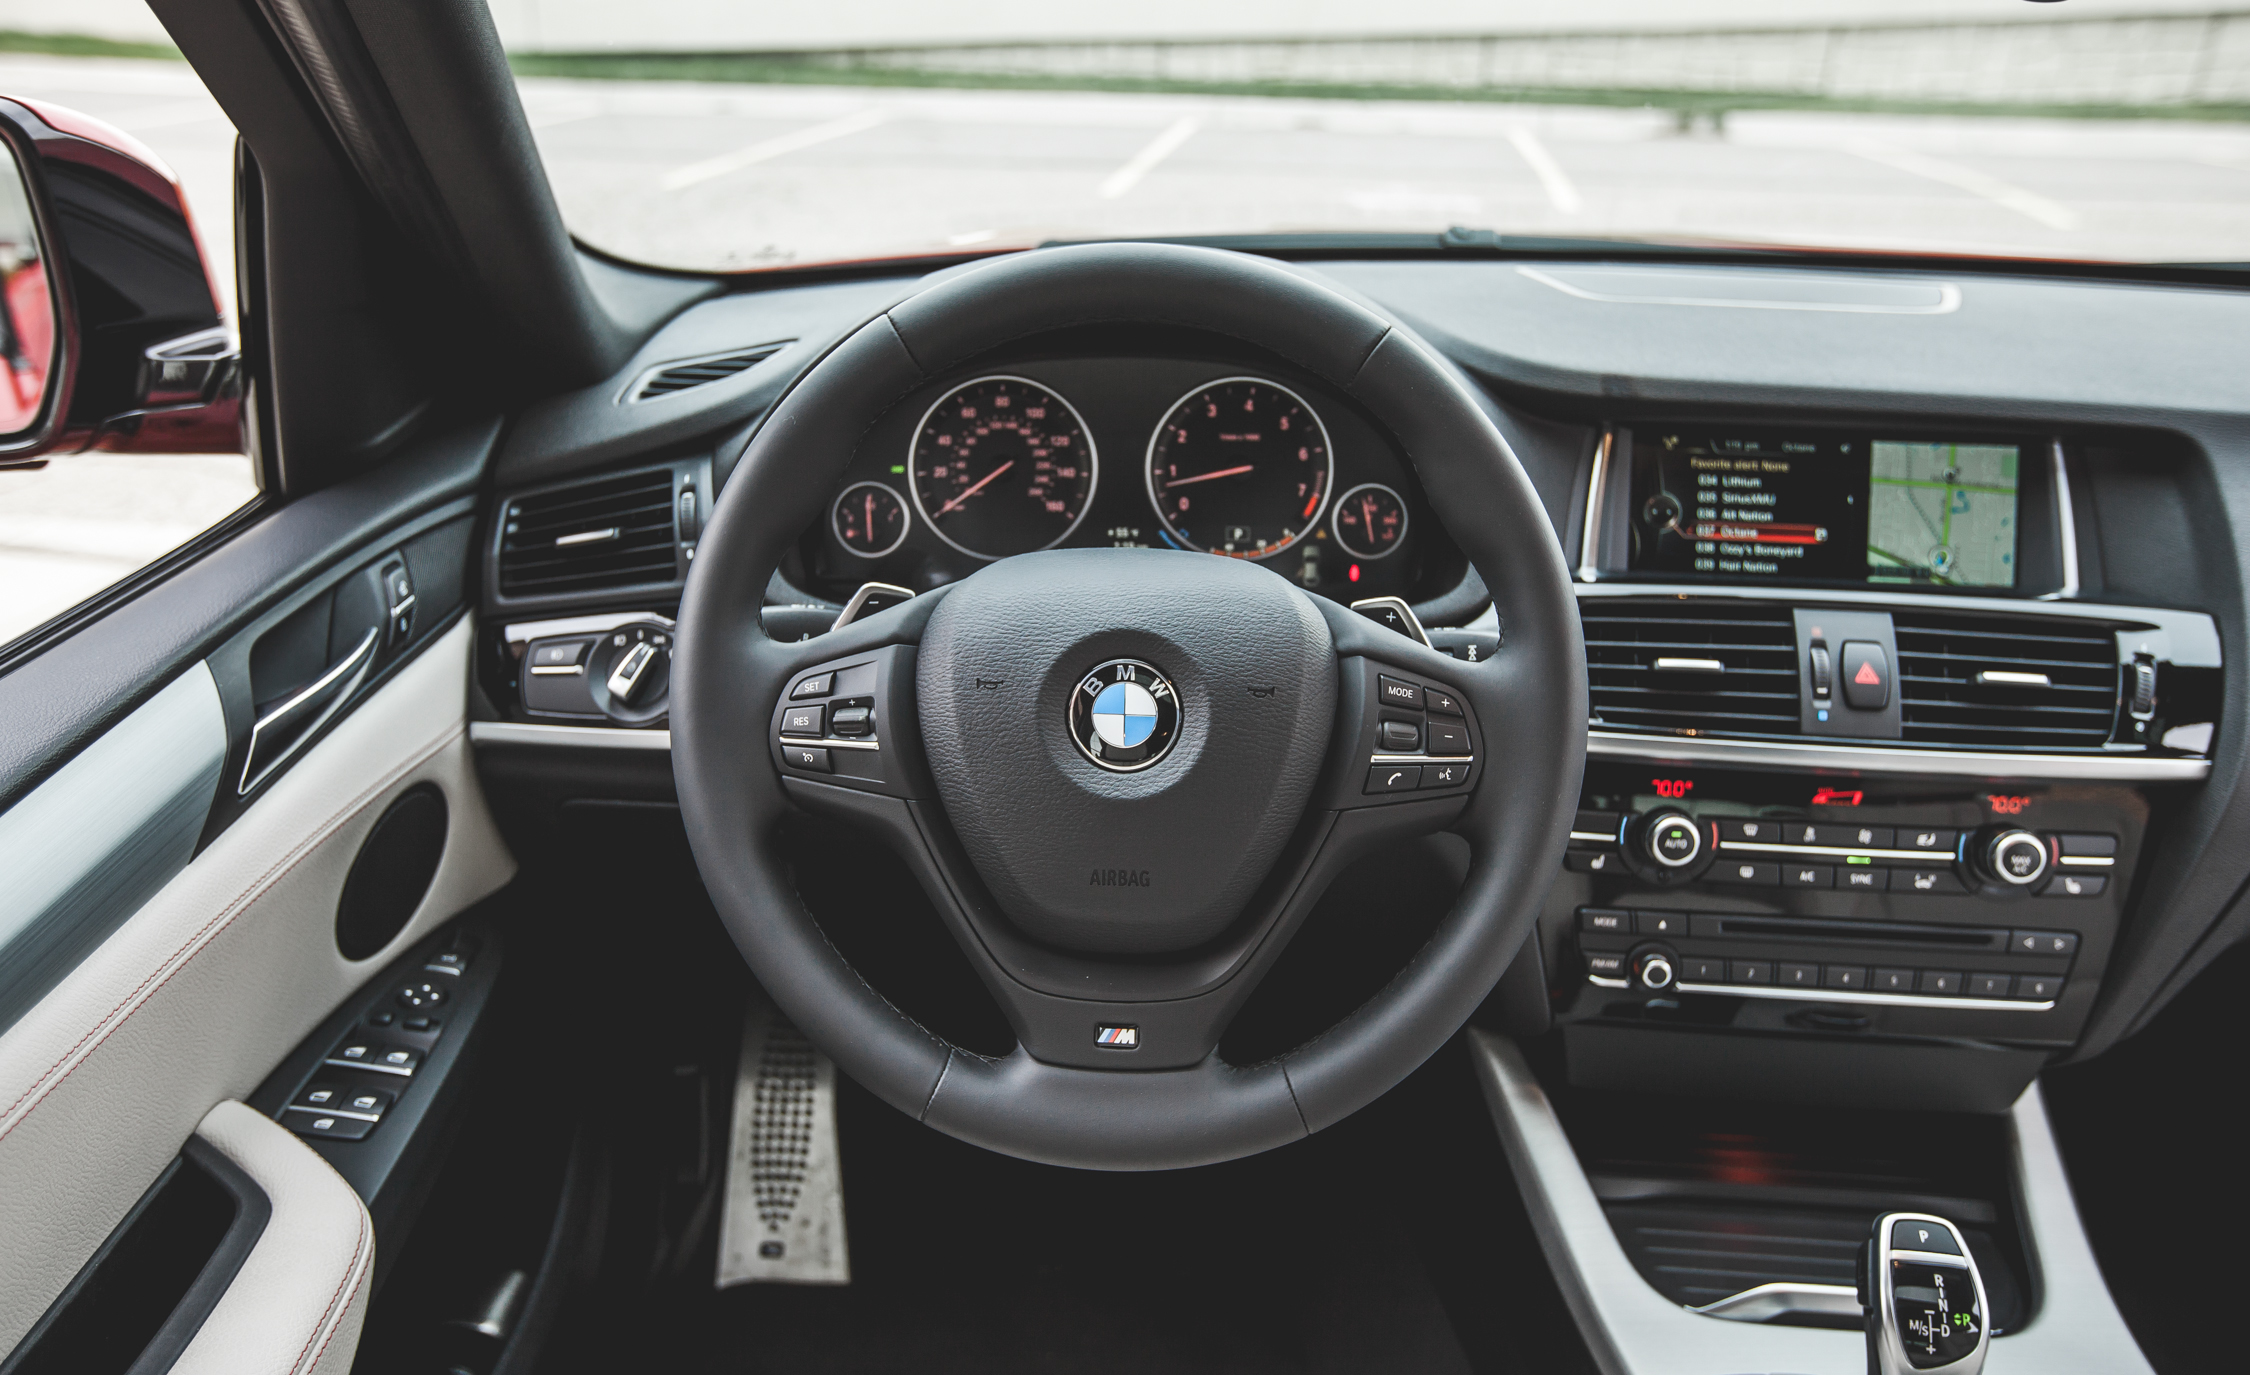 2015 BMW X4 XDrive28i Interior (View 15 of 29)